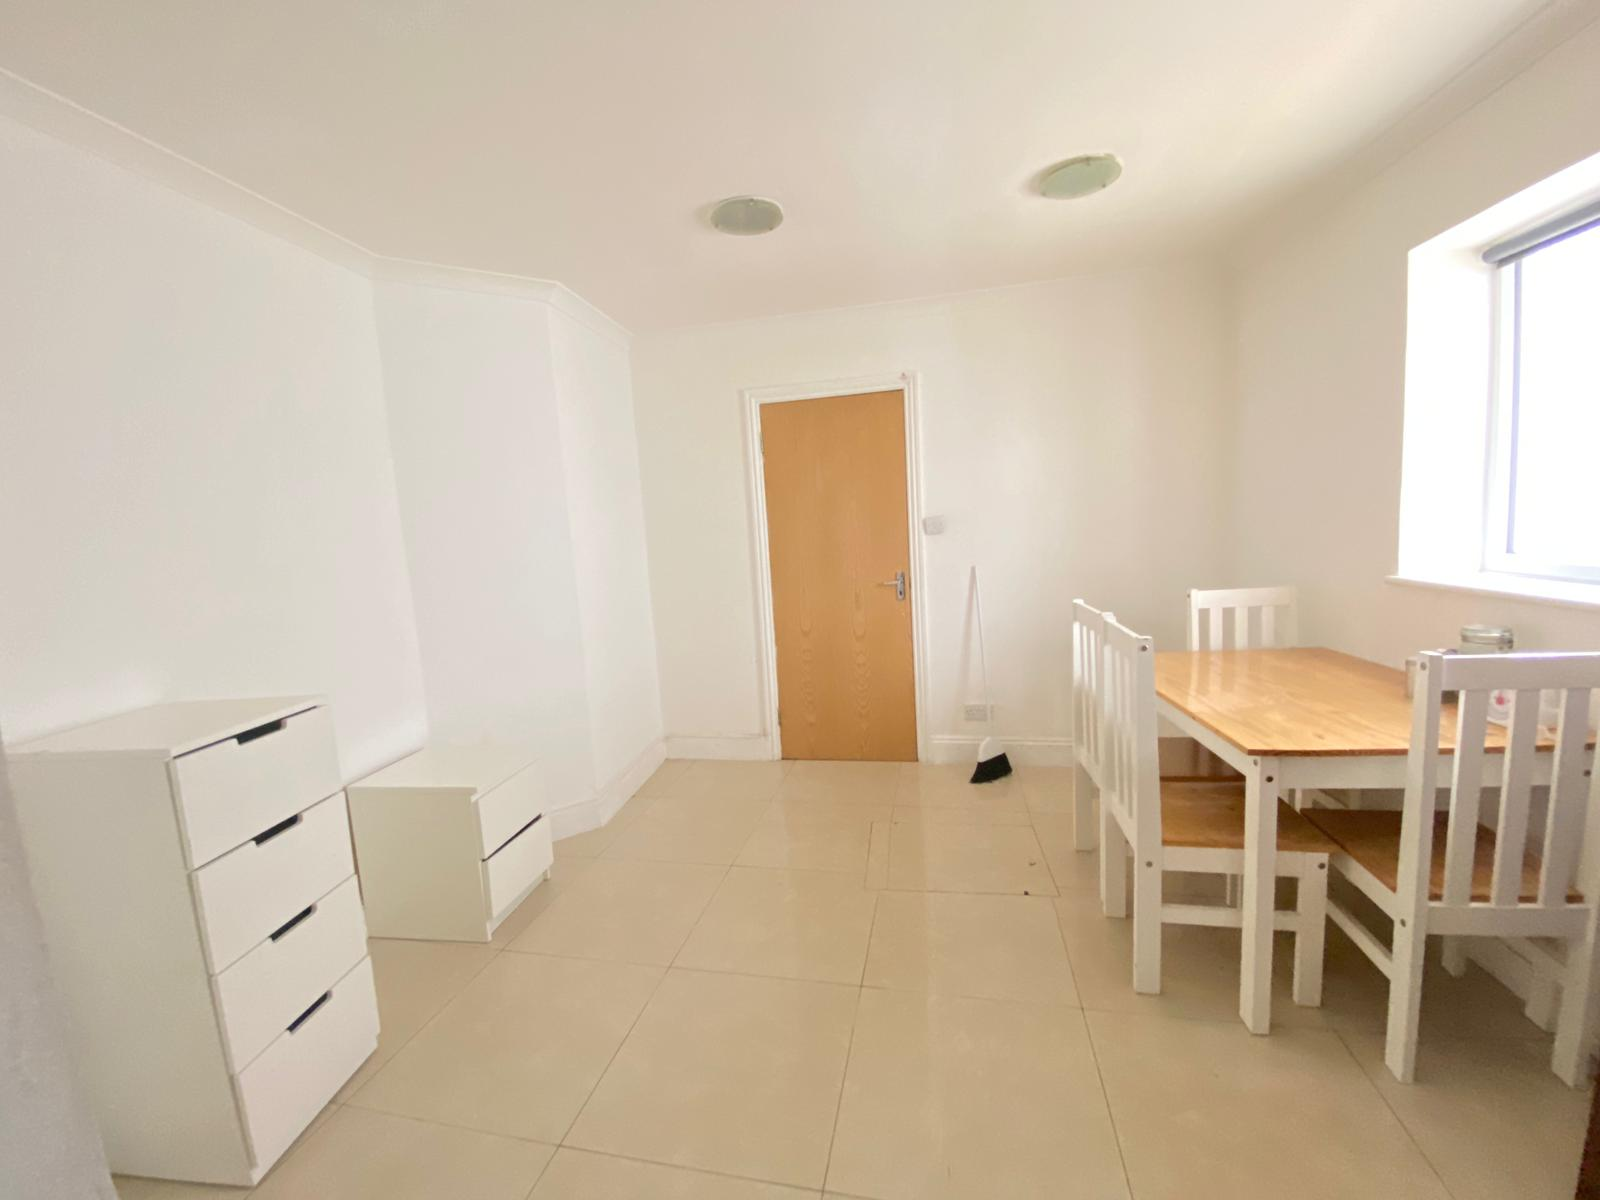 3 bed flat to rent in North End Road, West Kensington, London  - Property Image 4